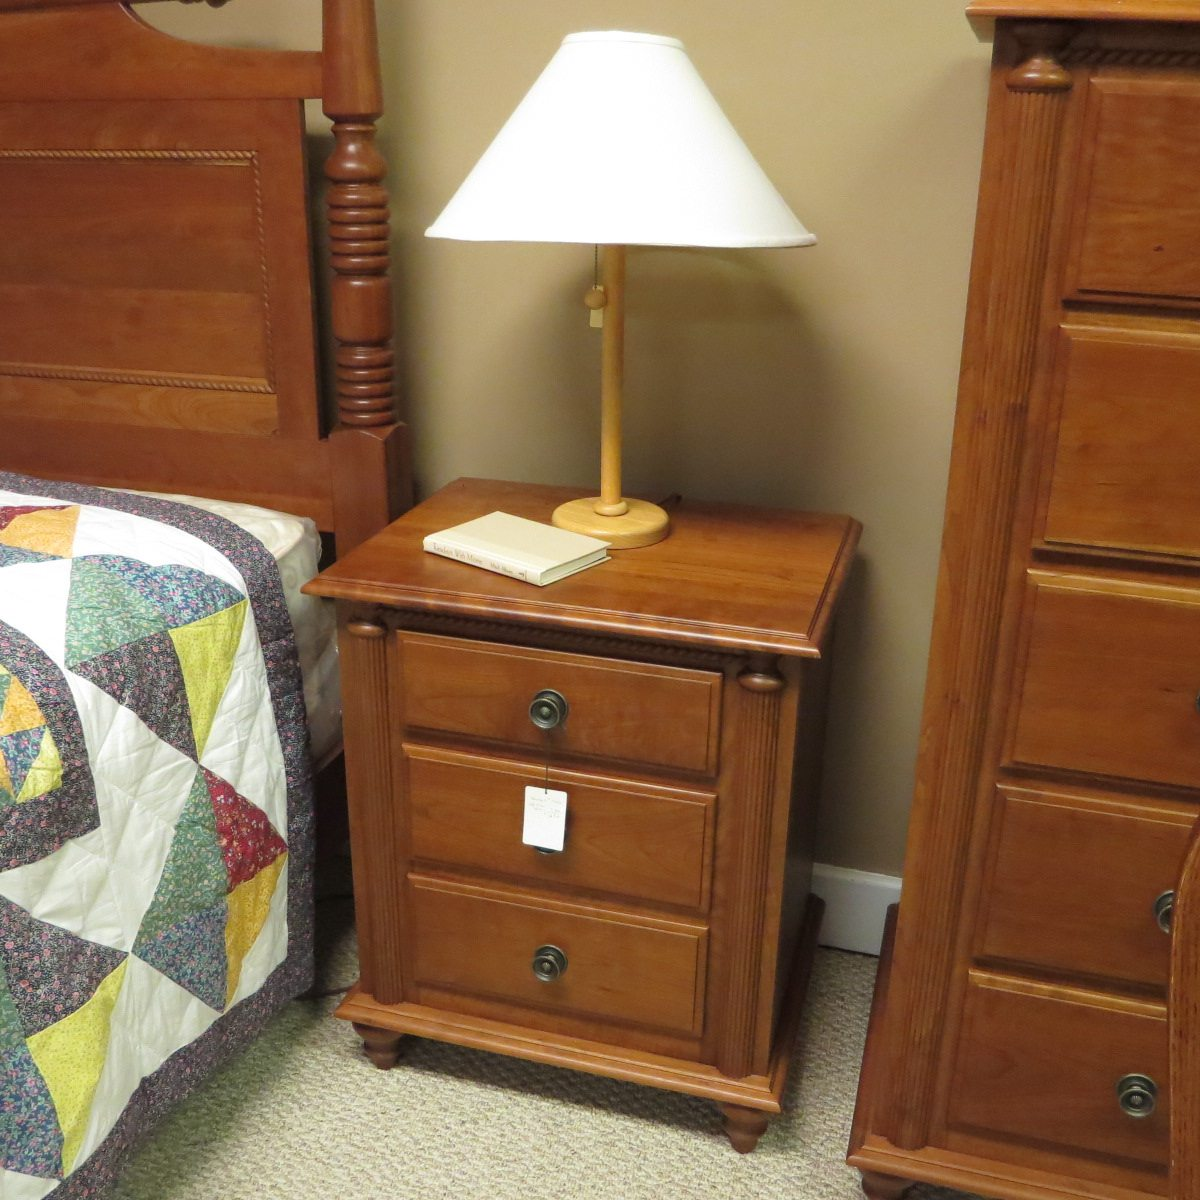 Ordinaire Visit Clear Creek Furniture Store To See Our Collections Of Hardwood  Nightstands. These Traditional Nightstands Available In Oak, Cherry And  Maple Can Be ...